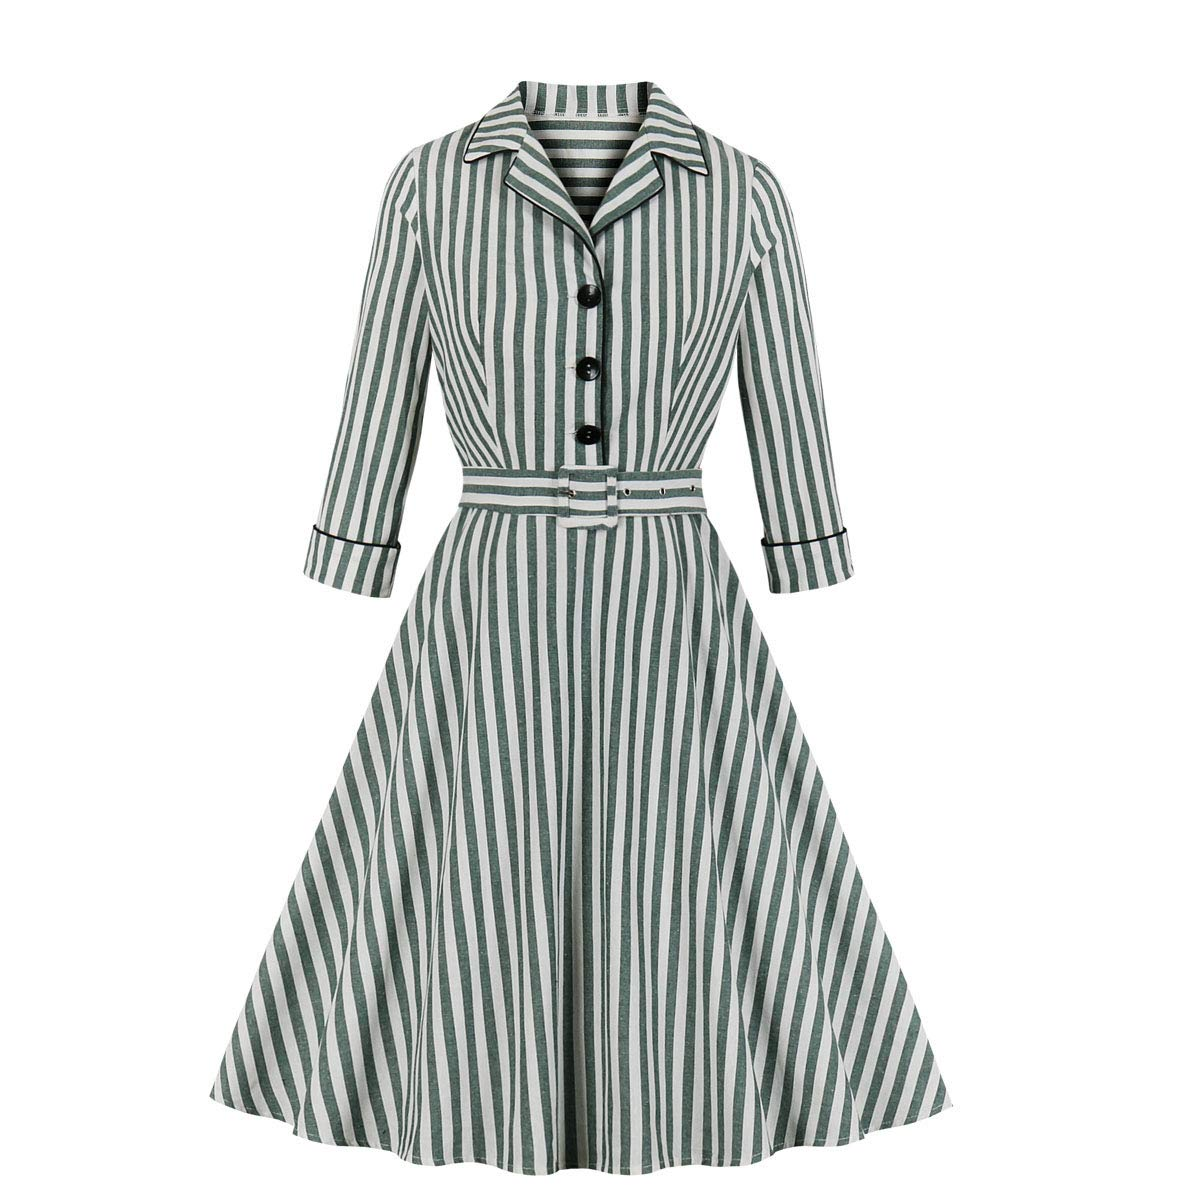 1940s Dresses | 40s Dress, Swing Dress Wellwits Womens 3/4 Sleeves Striped Button Shirt Lapel Vintage Career Dress $22.98 AT vintagedancer.com